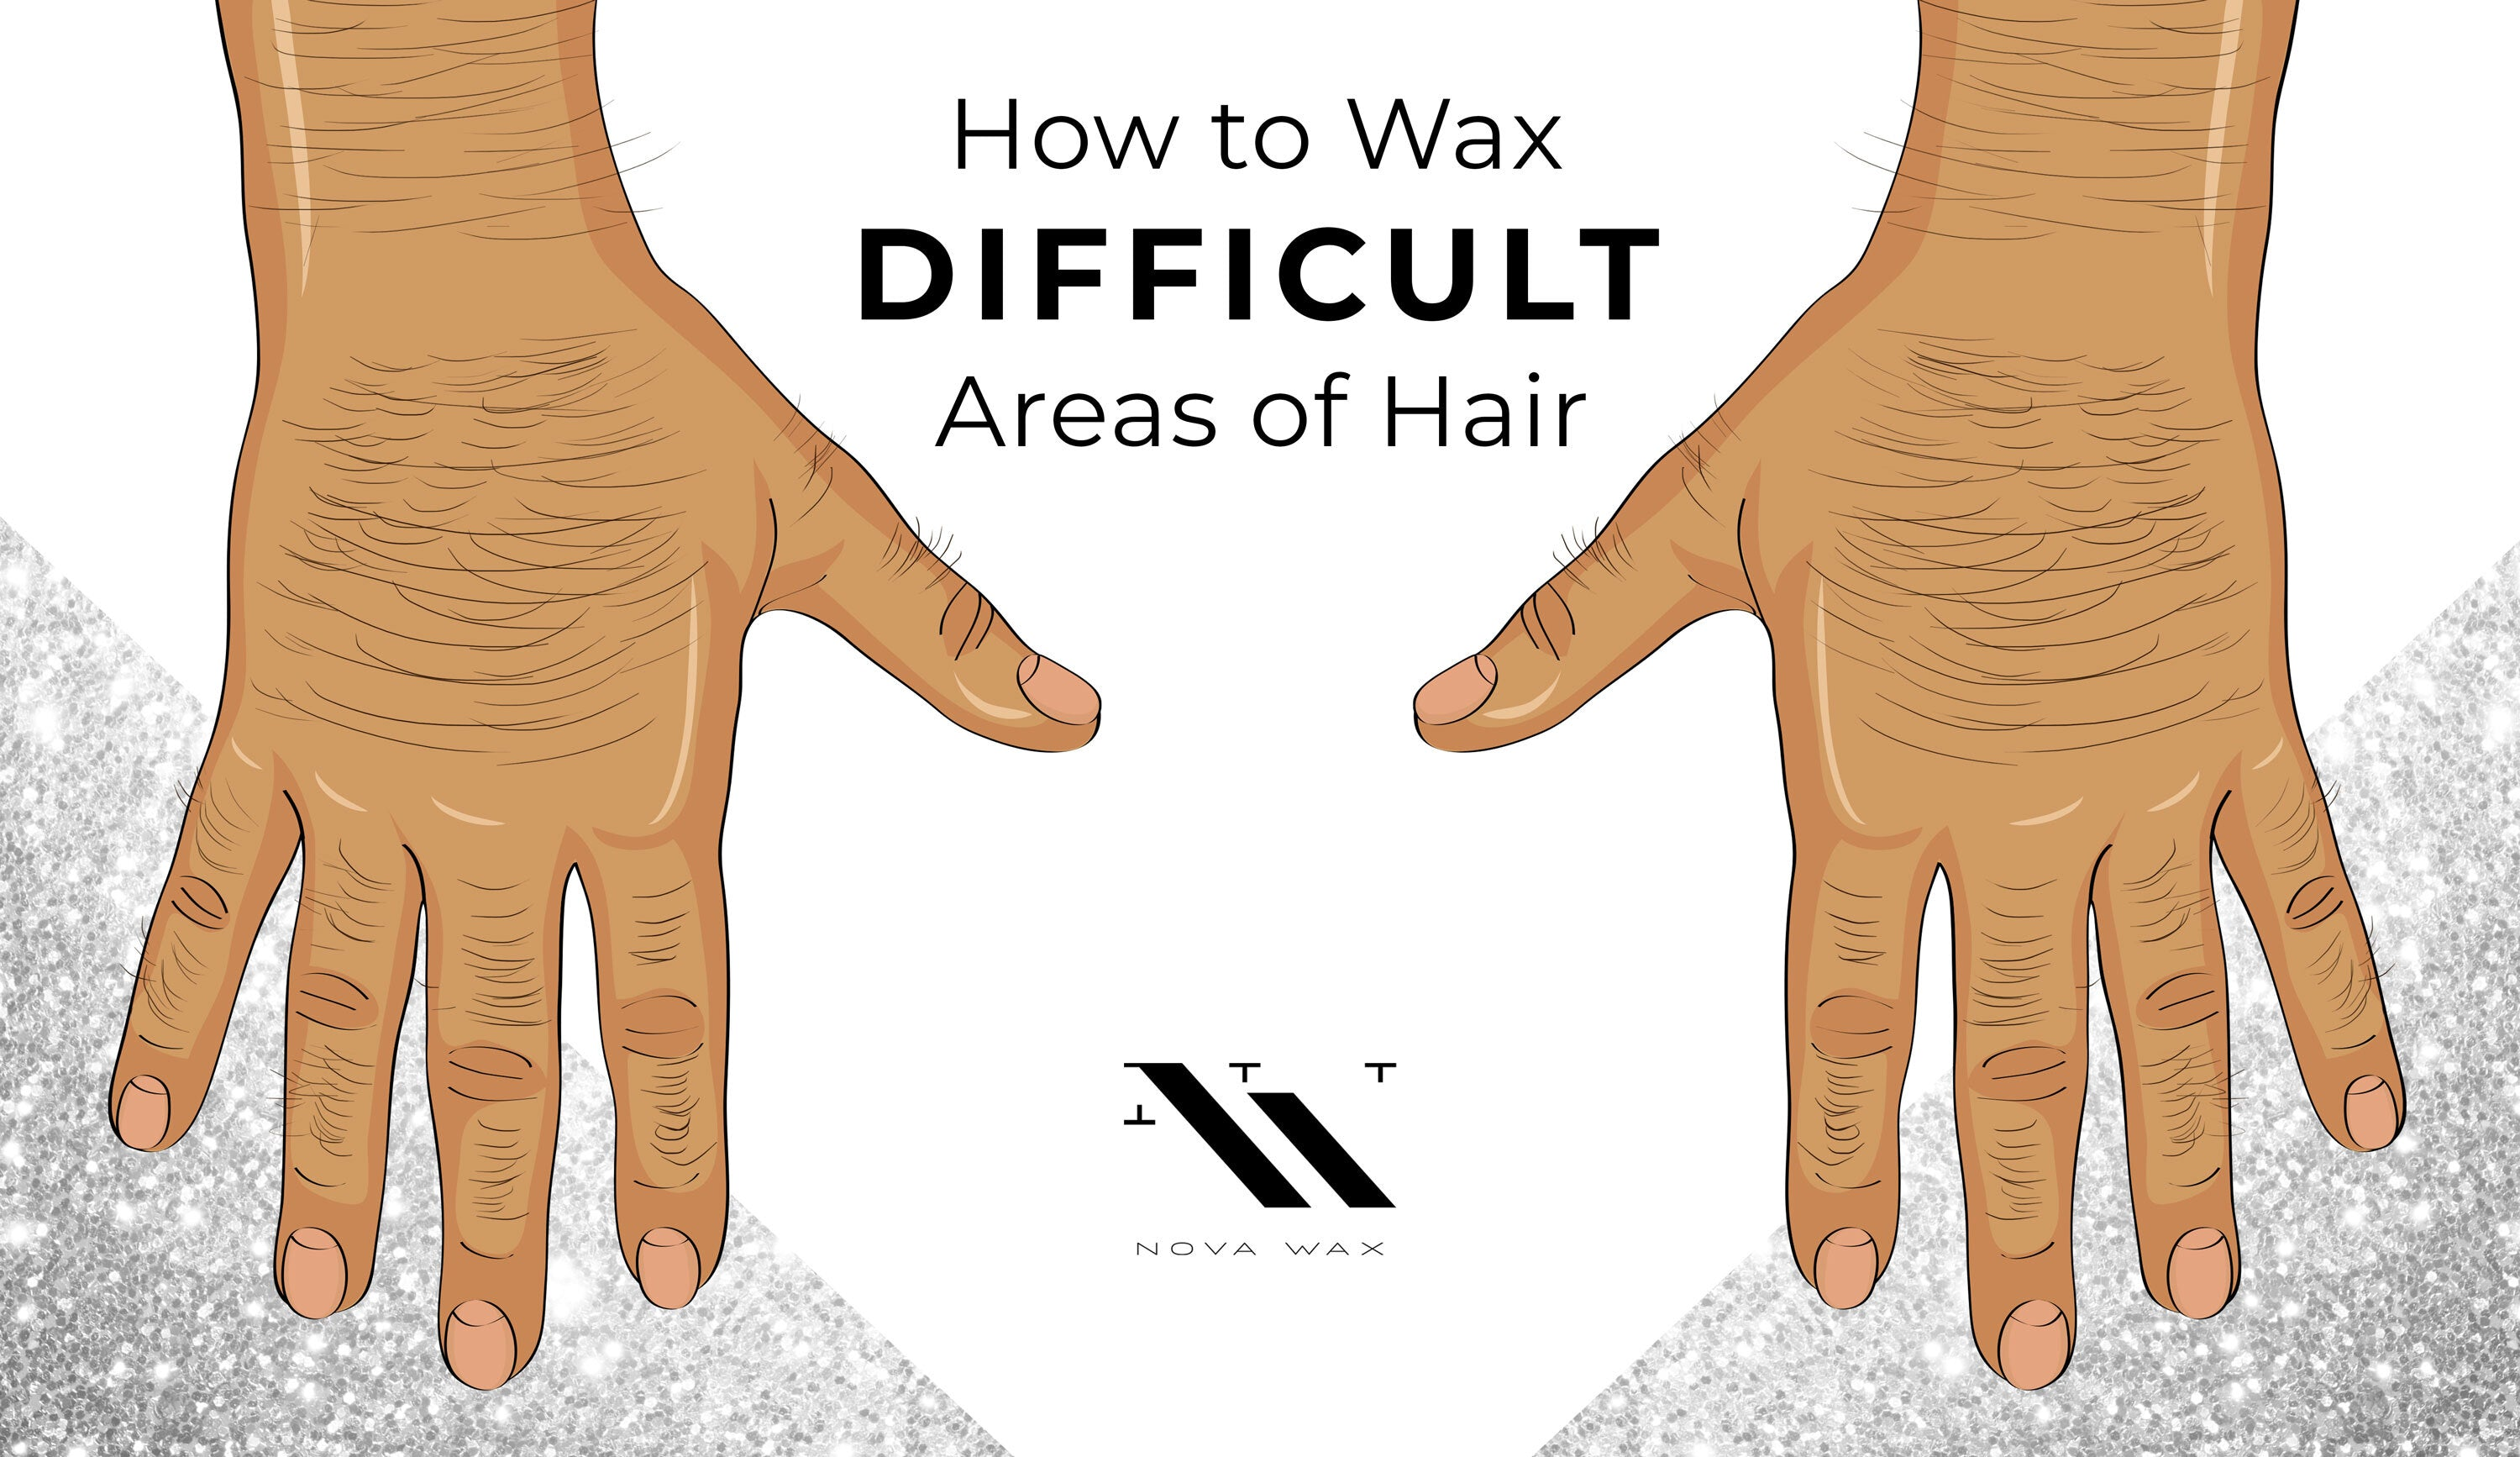 How to Wax Difficult Areas of Hair